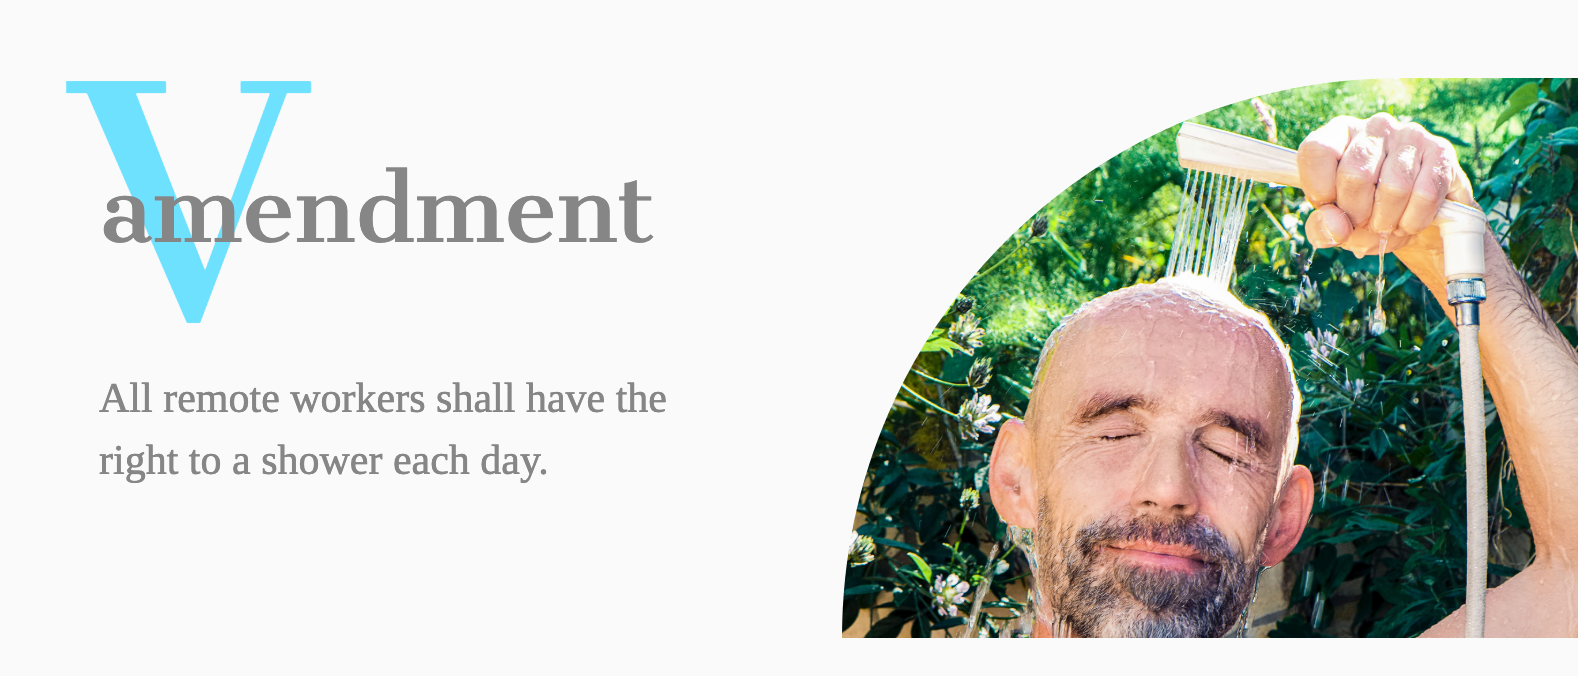 Amendment - All remote workers shall have the right to shower each day